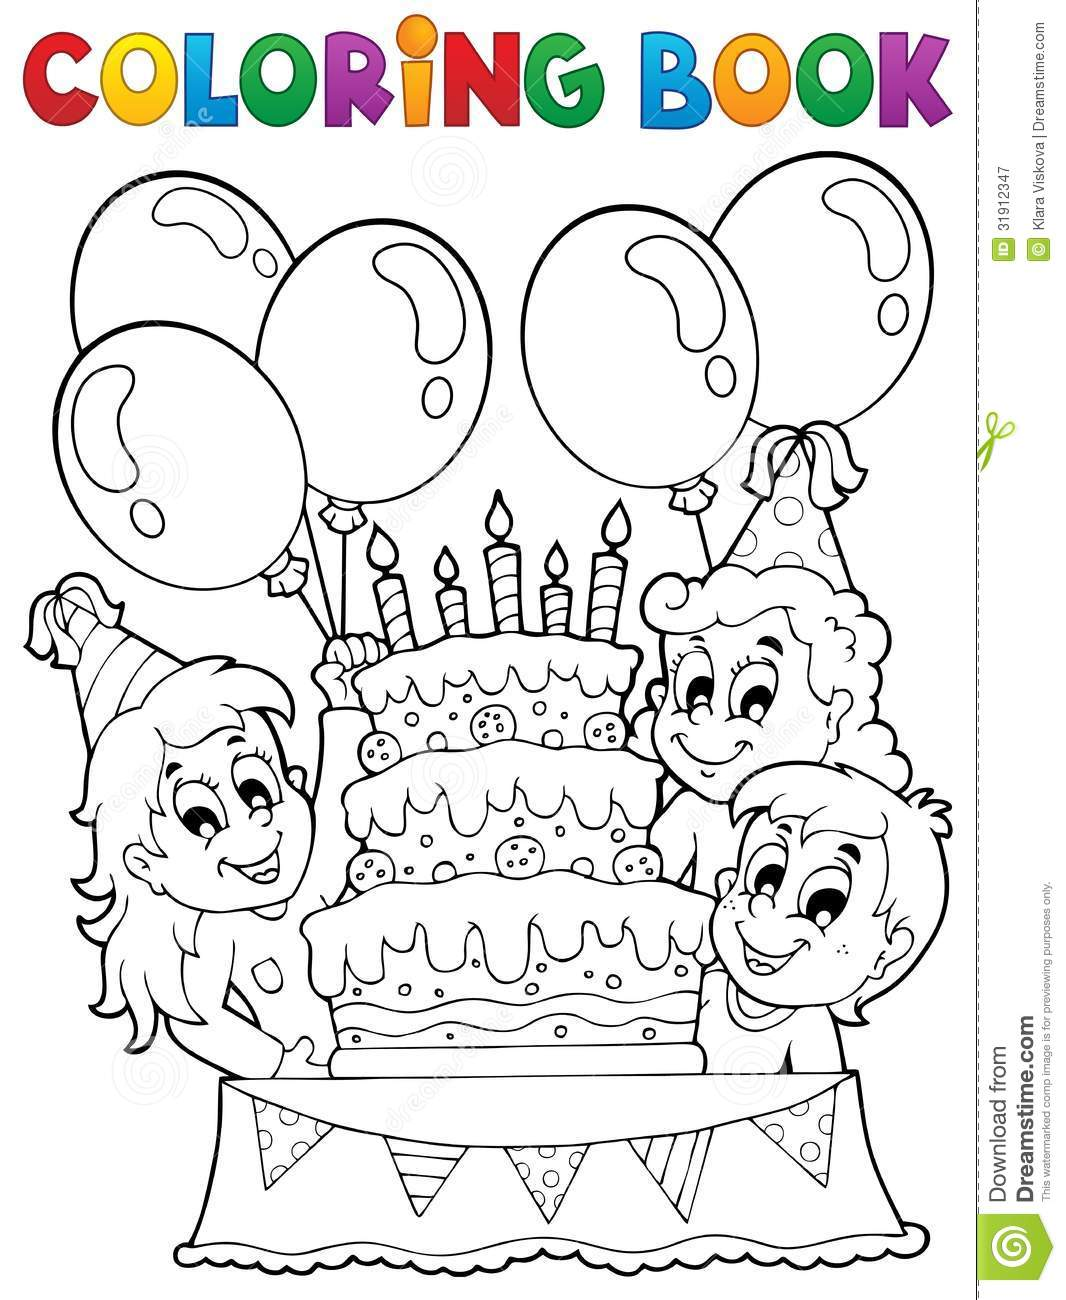 coloring book kids party theme 2 royalty free stock photography - Drawing Books For Kids